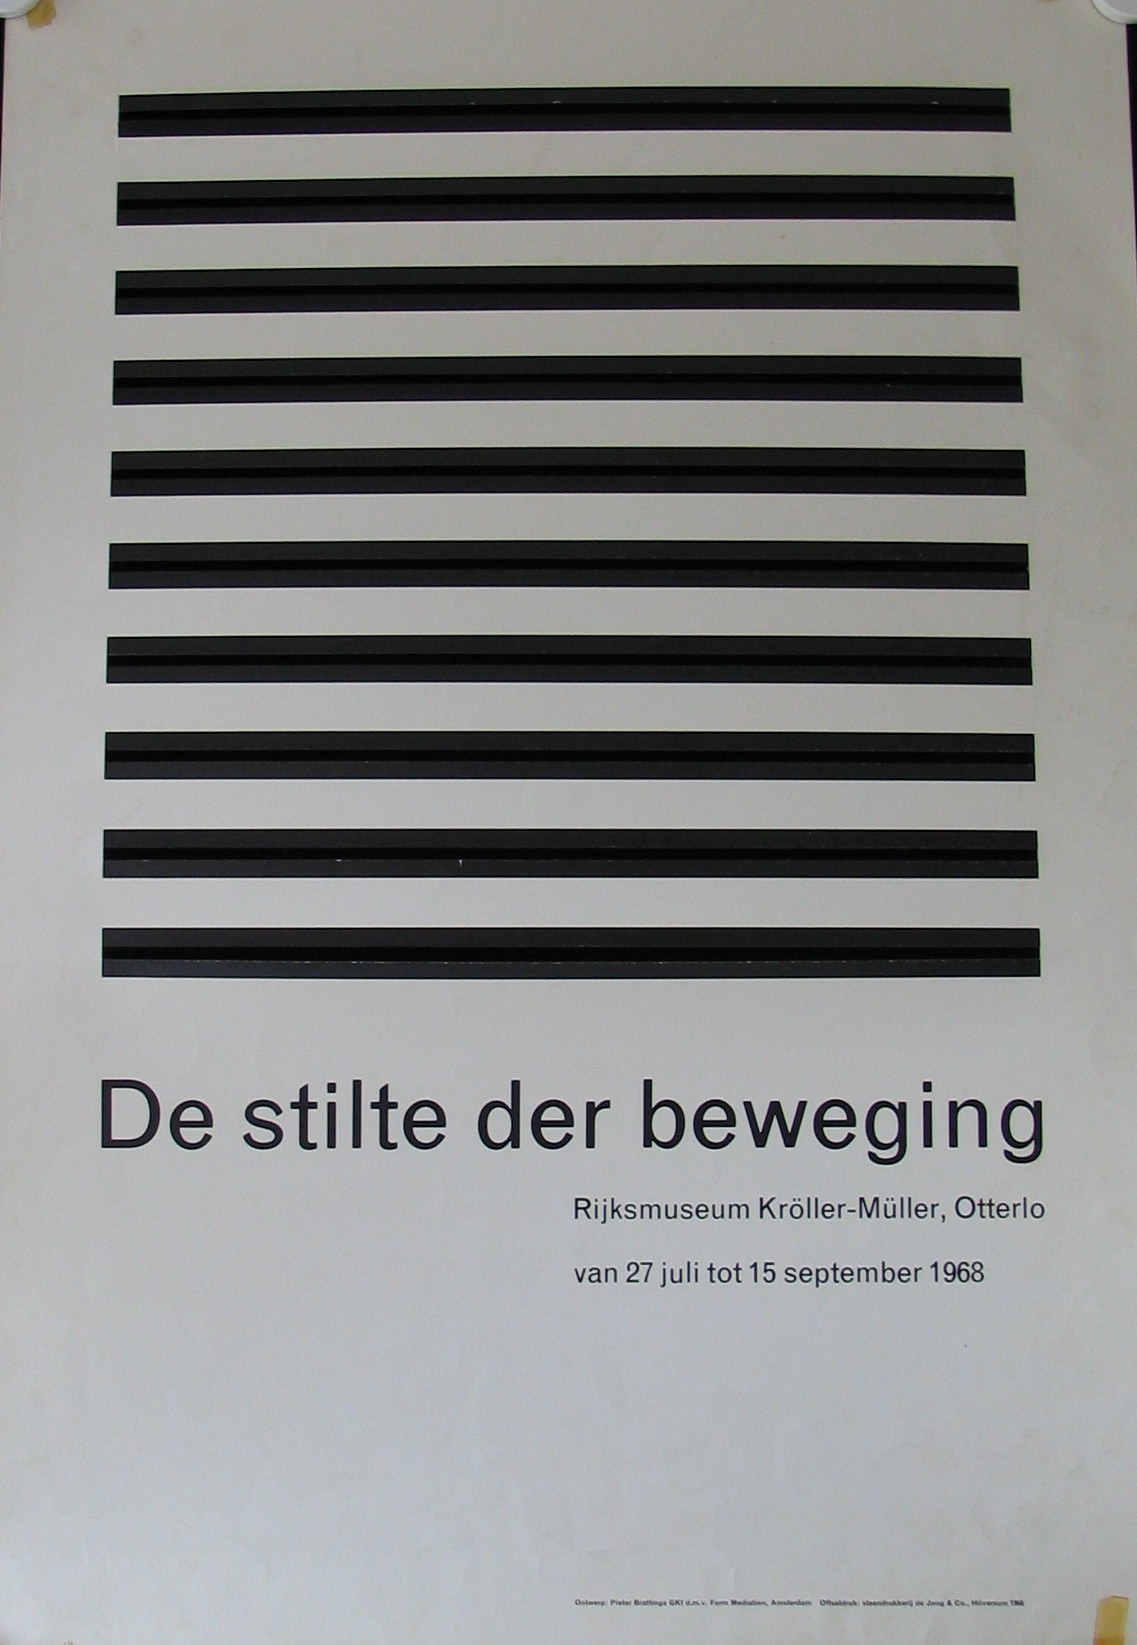 Brattinga stilte der beweging